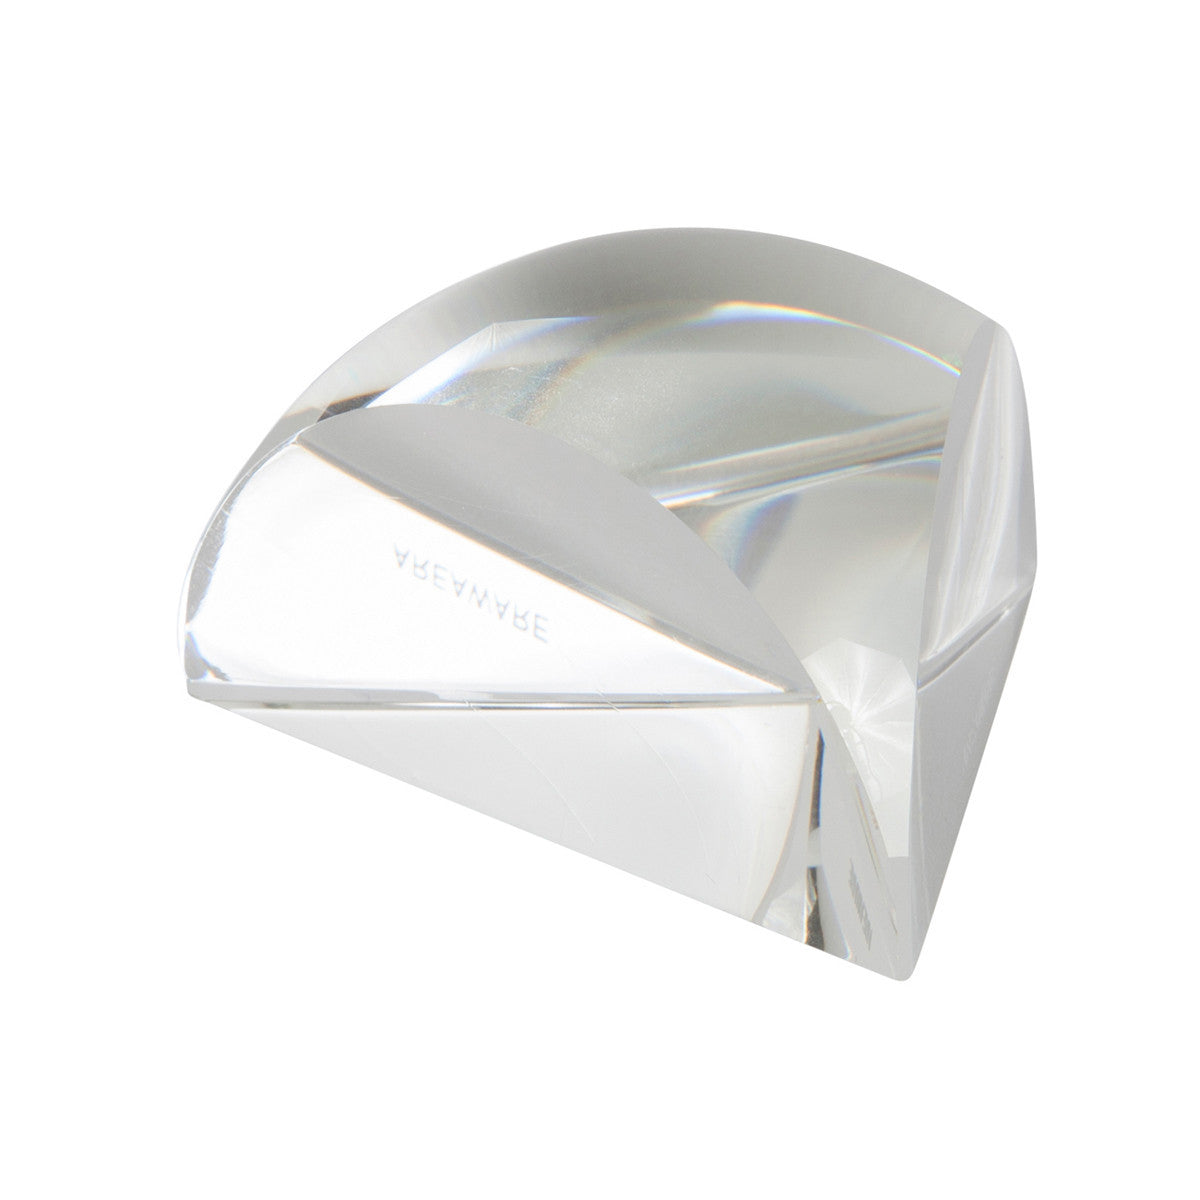 Areaware Prism Magnifier Magnifying Glass